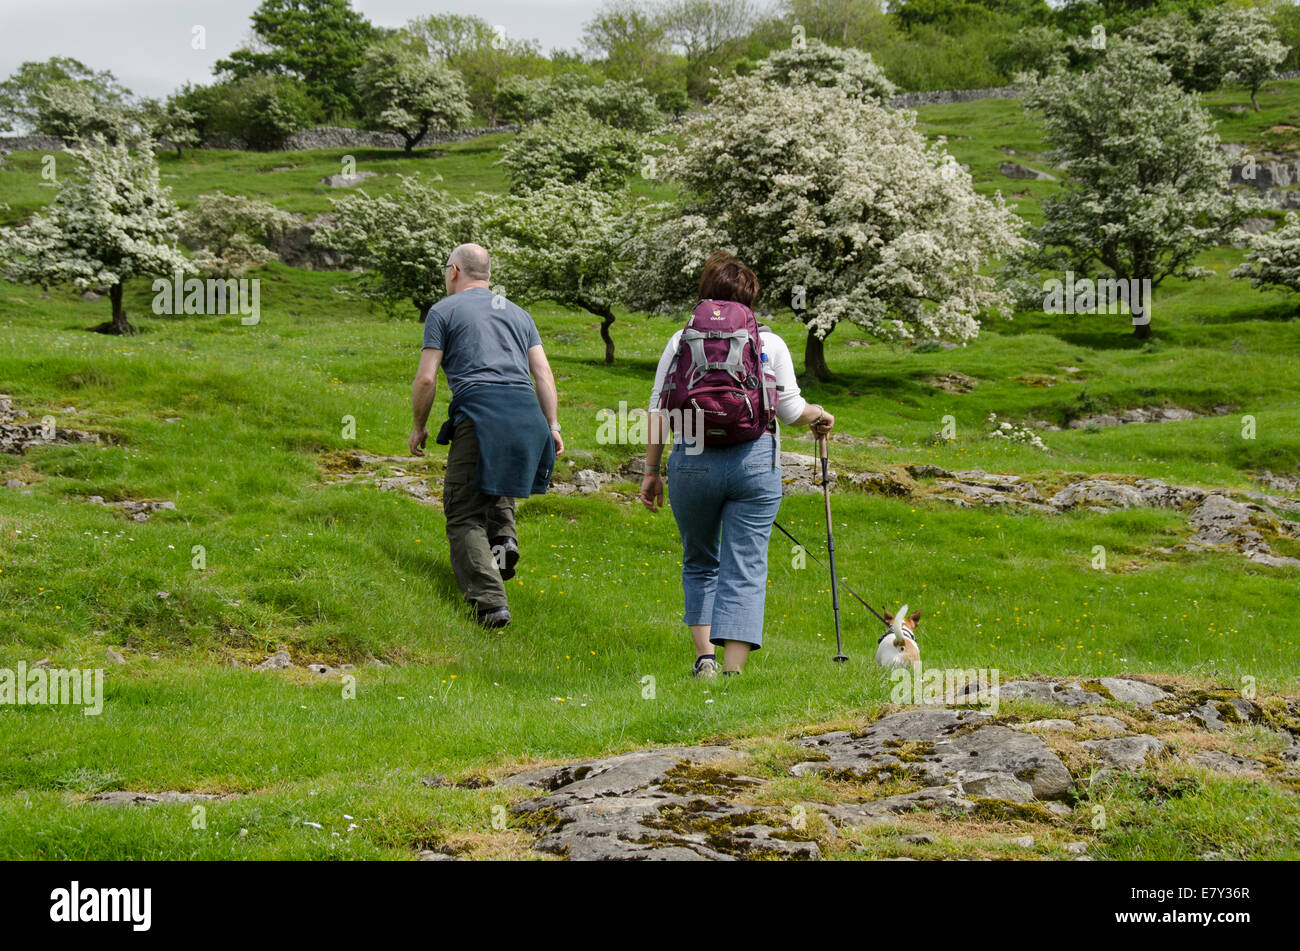 Couple (man & woman) & small dog on lead, walk up grassy hillside slope with flowering hawthorn trees - Oxenber Stock Photo